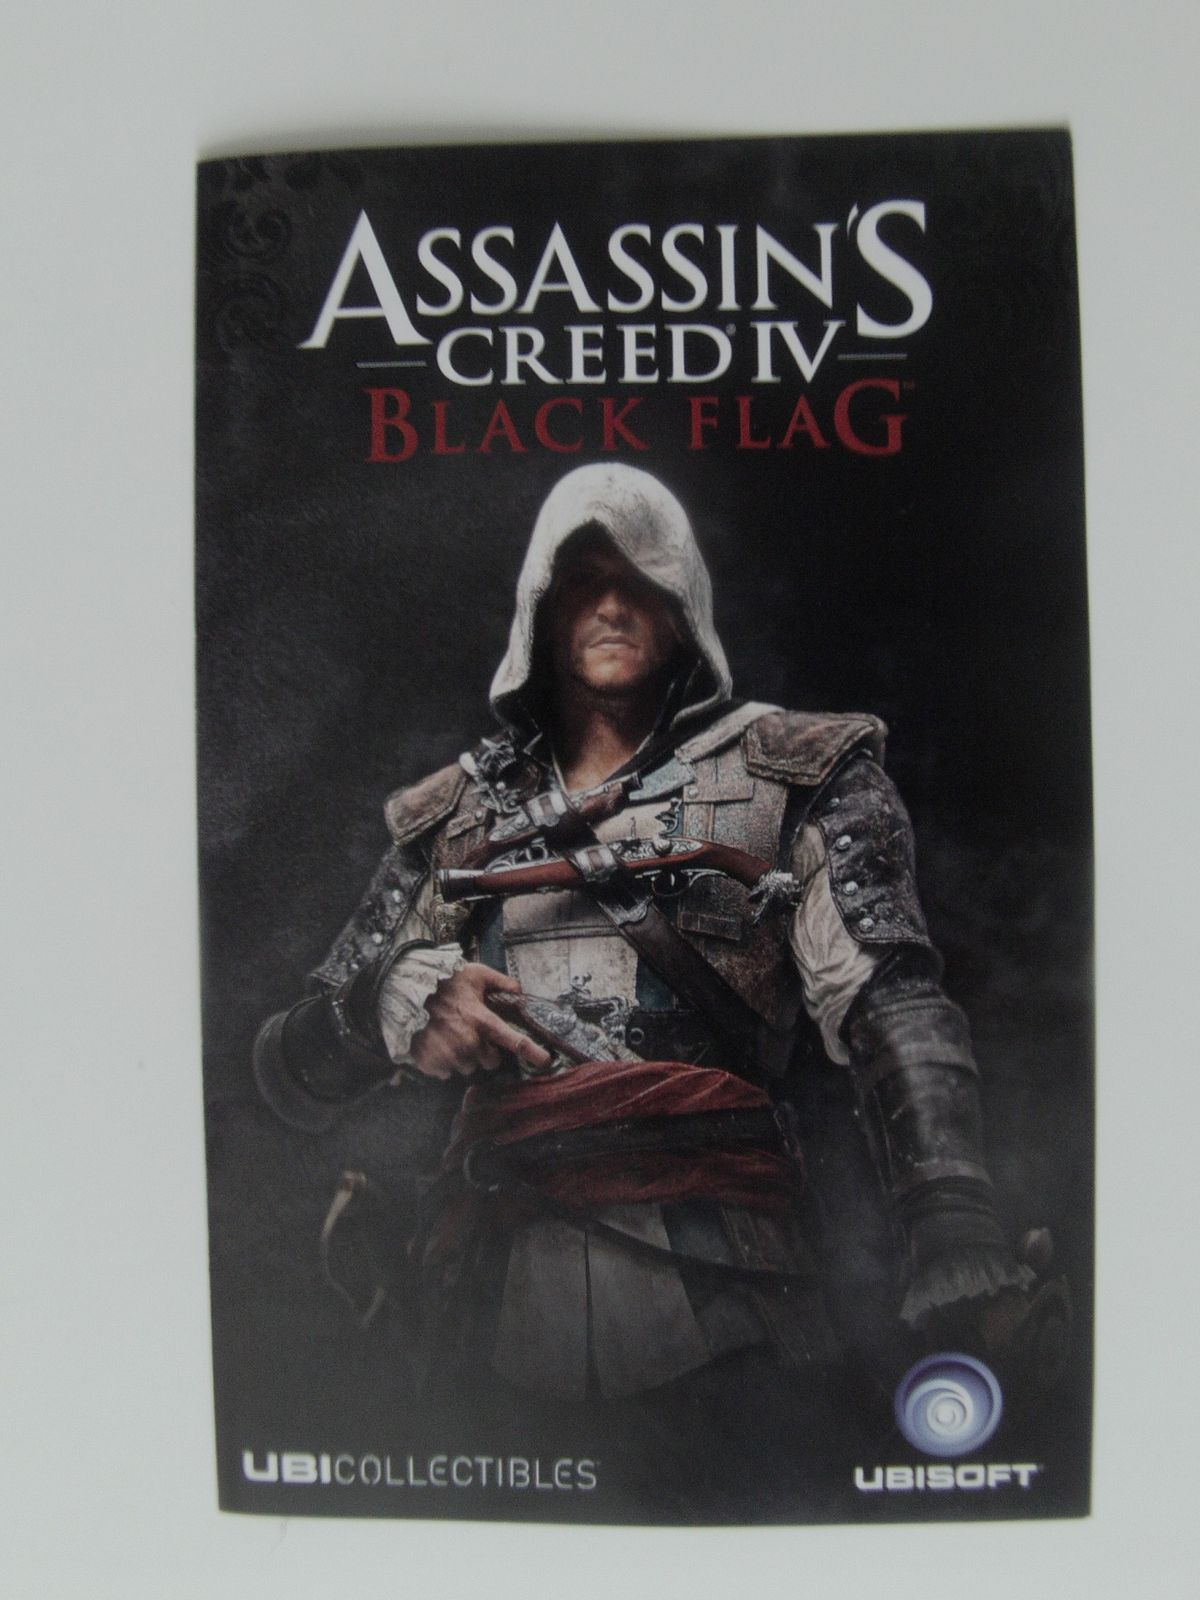 [Arrivage] Figurine Edward Kenway Assassin's Creed IV Black Flag